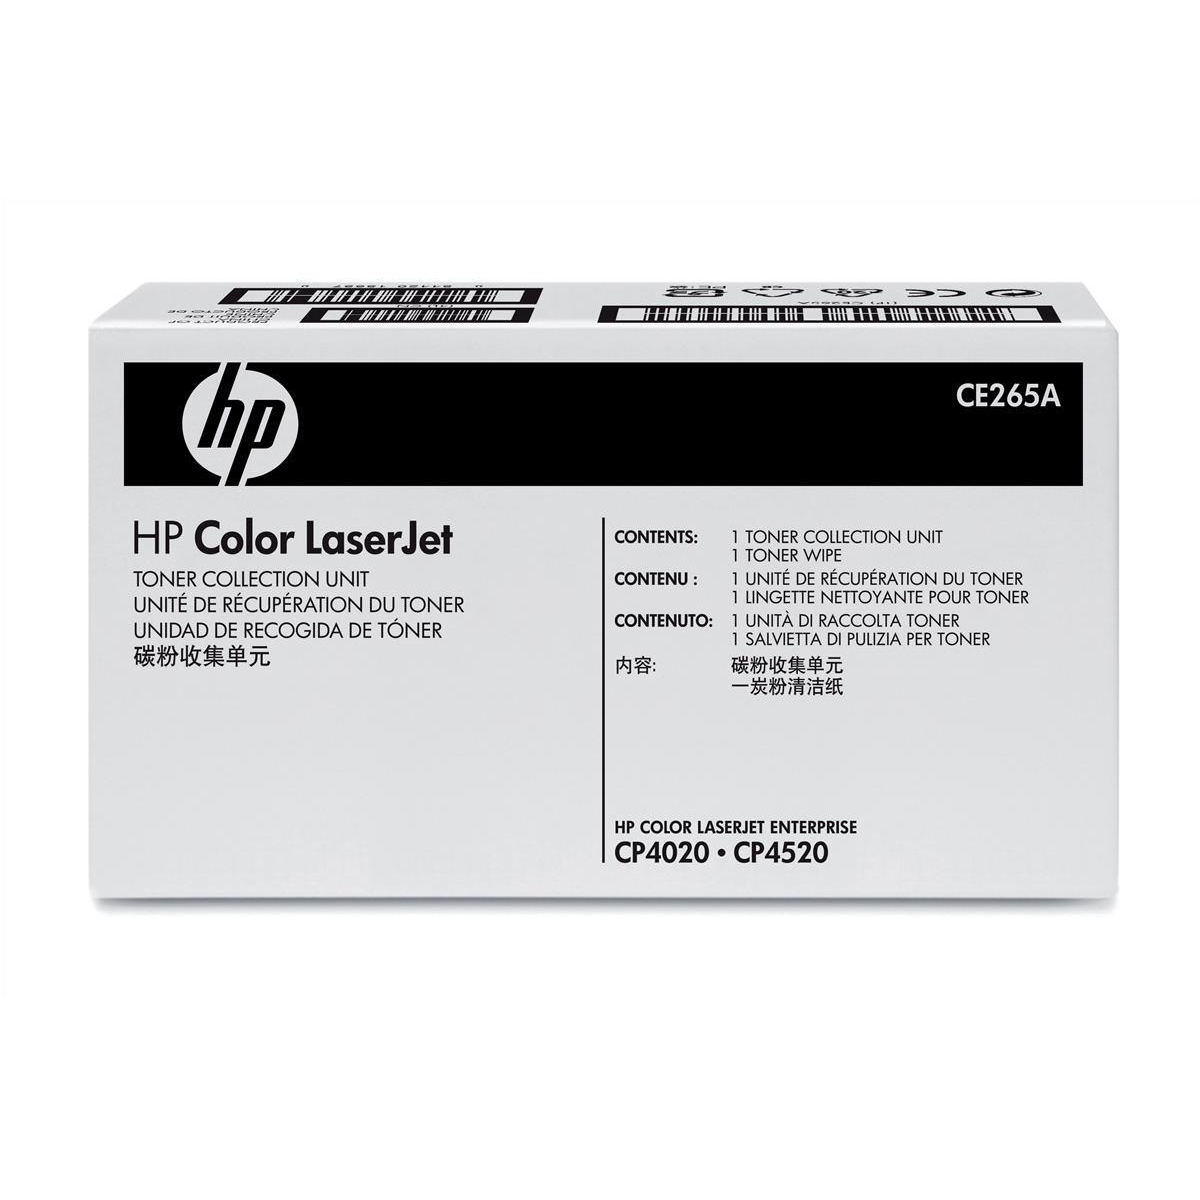 Waste Toners & Collectors HP Color LaserJet Toner Collection Unit Page Life 36000pp Ref CE265A